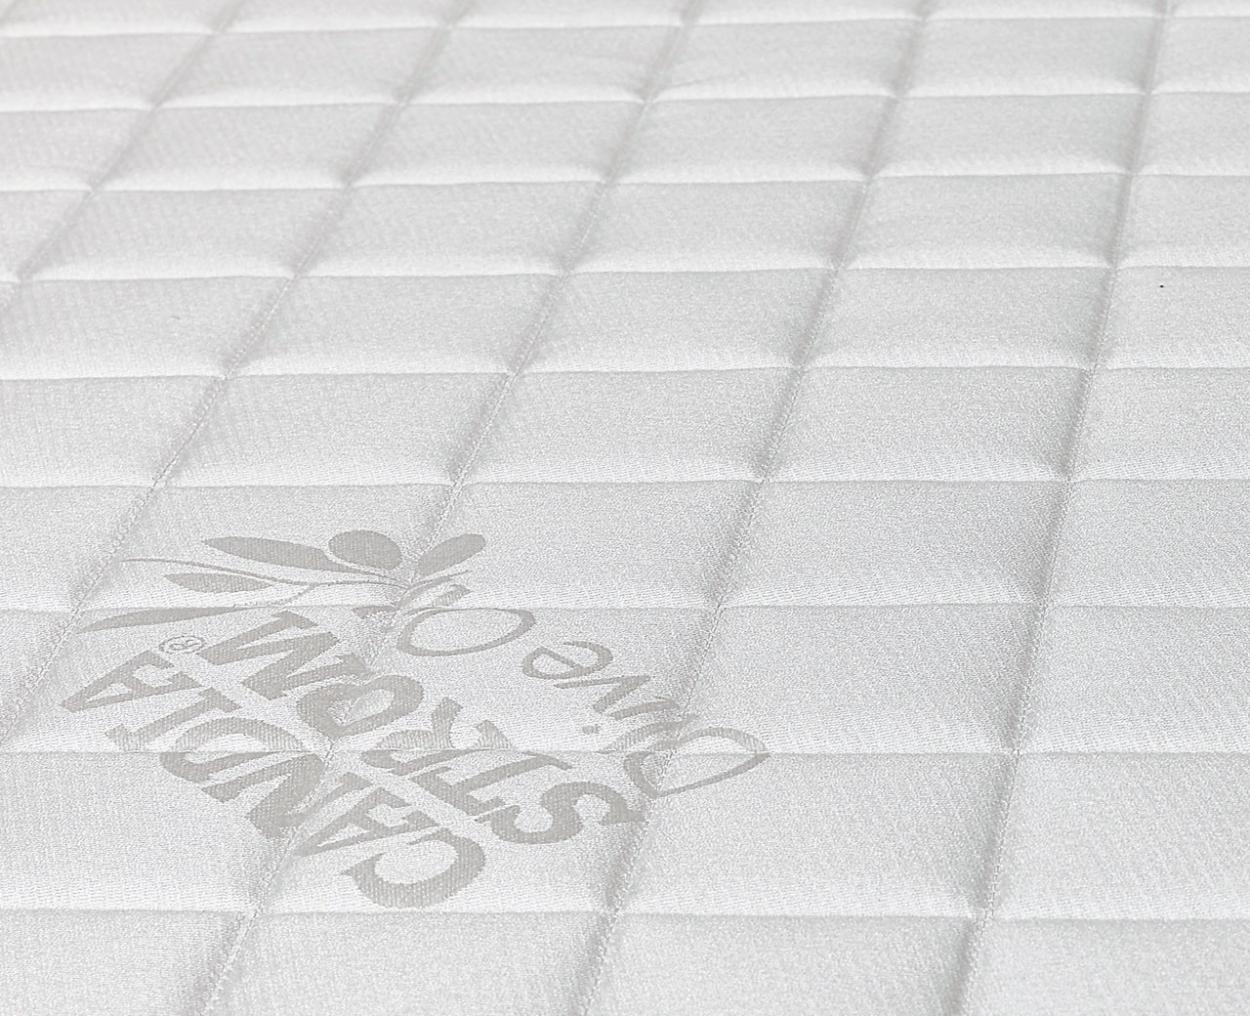 CandiaStrom - Mattress CYCLADIC SERENITY - NATUREZZA COLLECTION -  Details